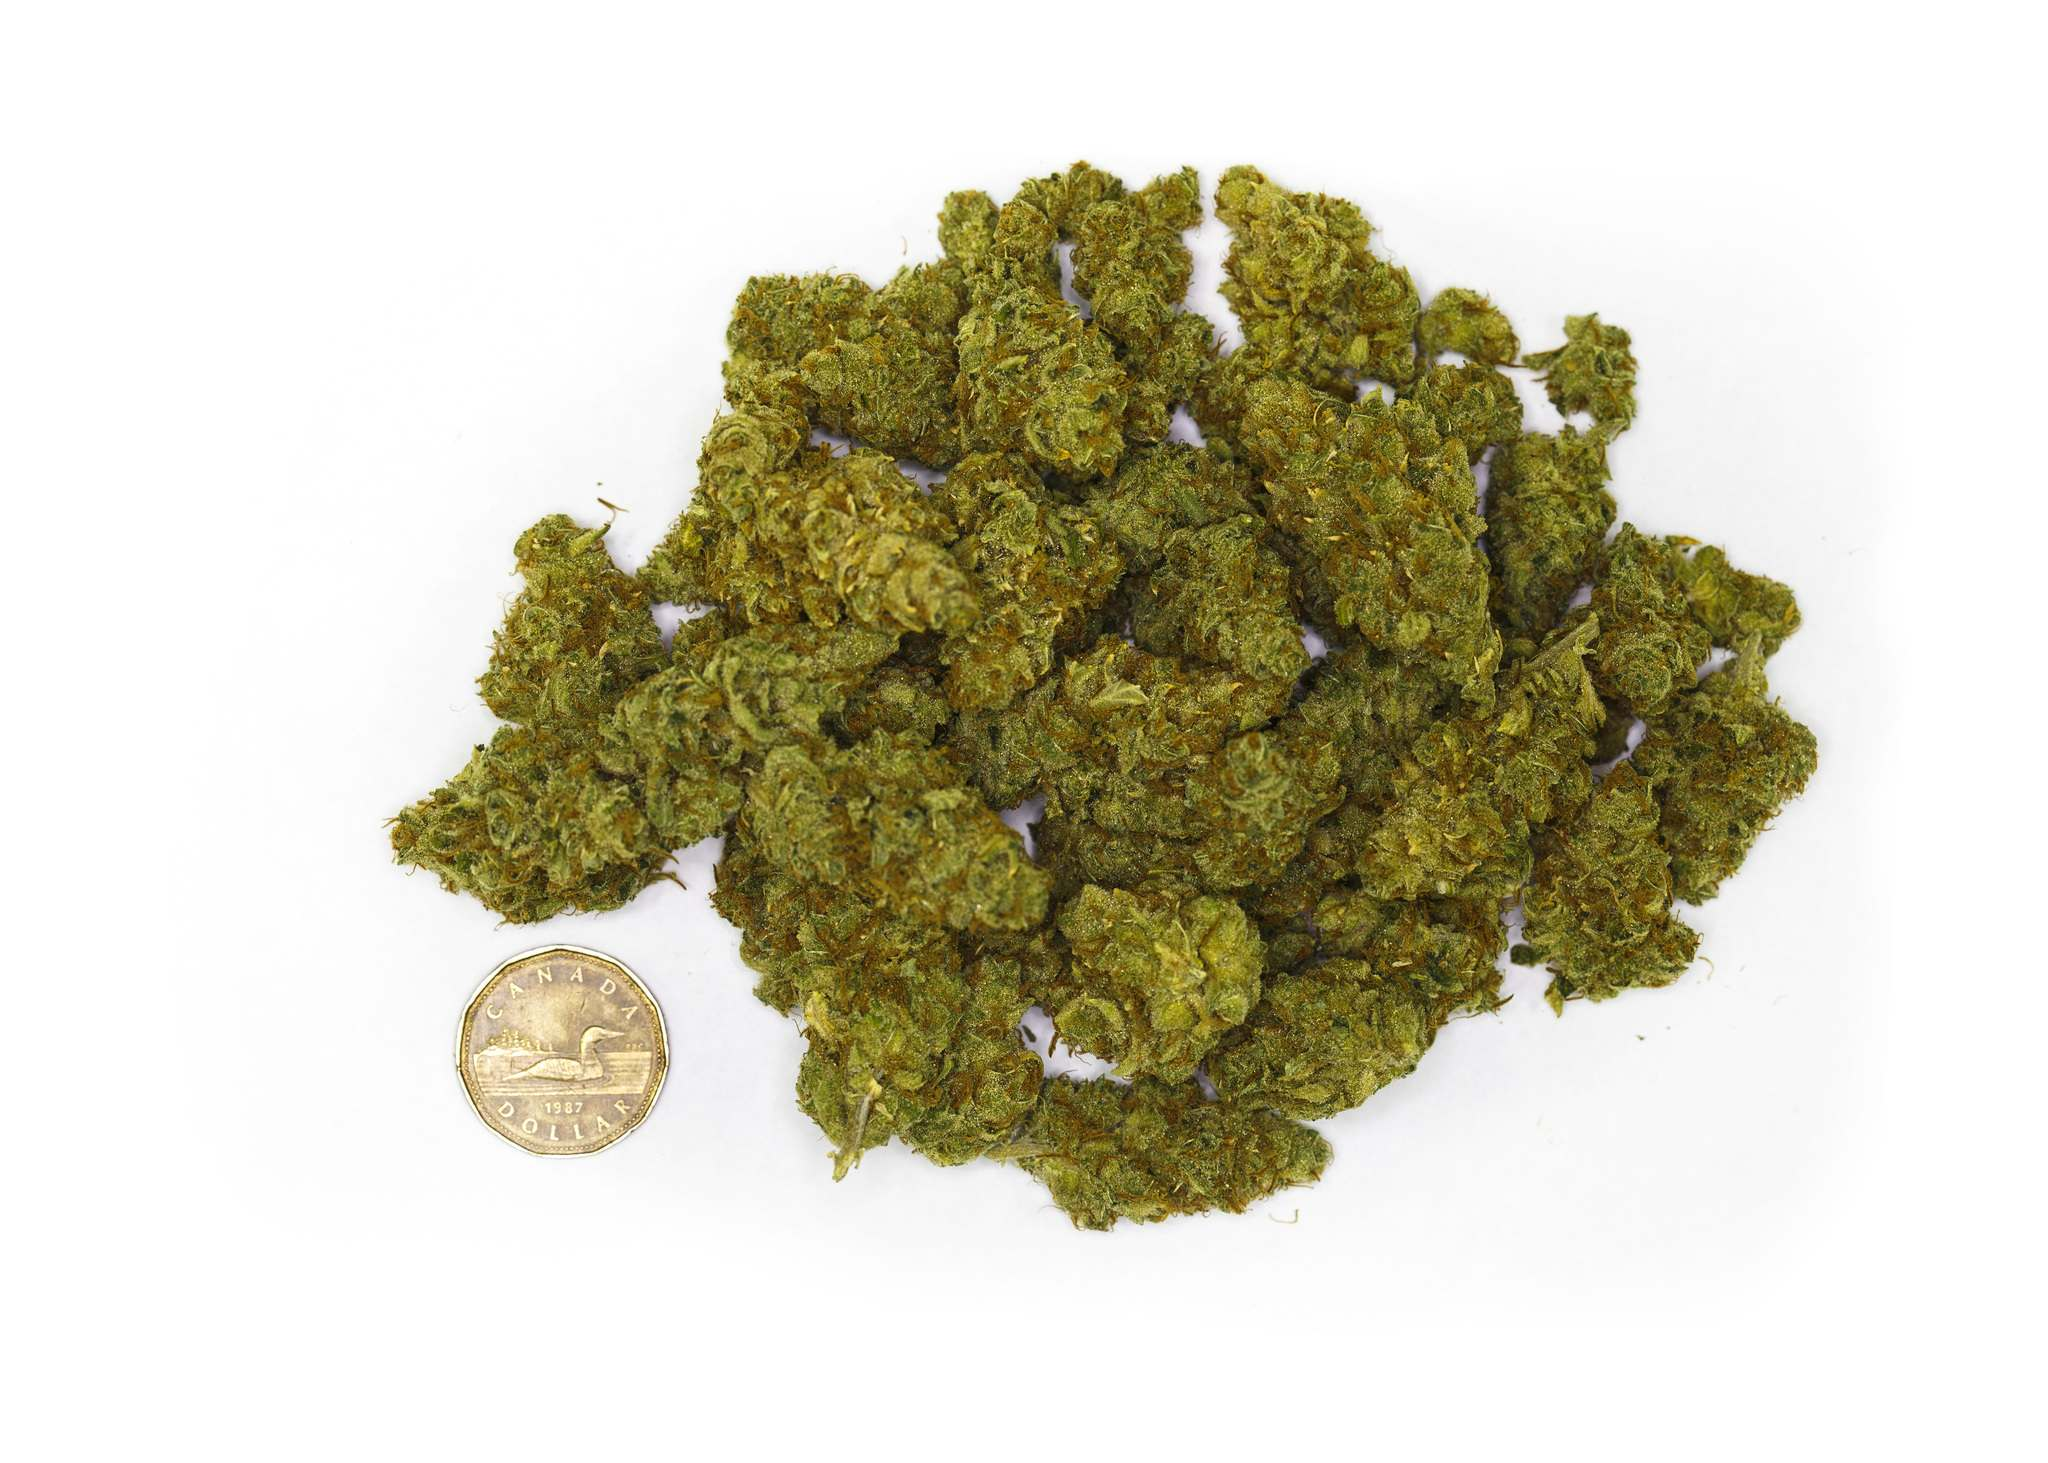 Thirty grams of dried cannabis bud -- or slightly more than one ounce -- is the legal limit on public possession for Canadian adults.  (Mike Deal / Winnipeg Free Press files)